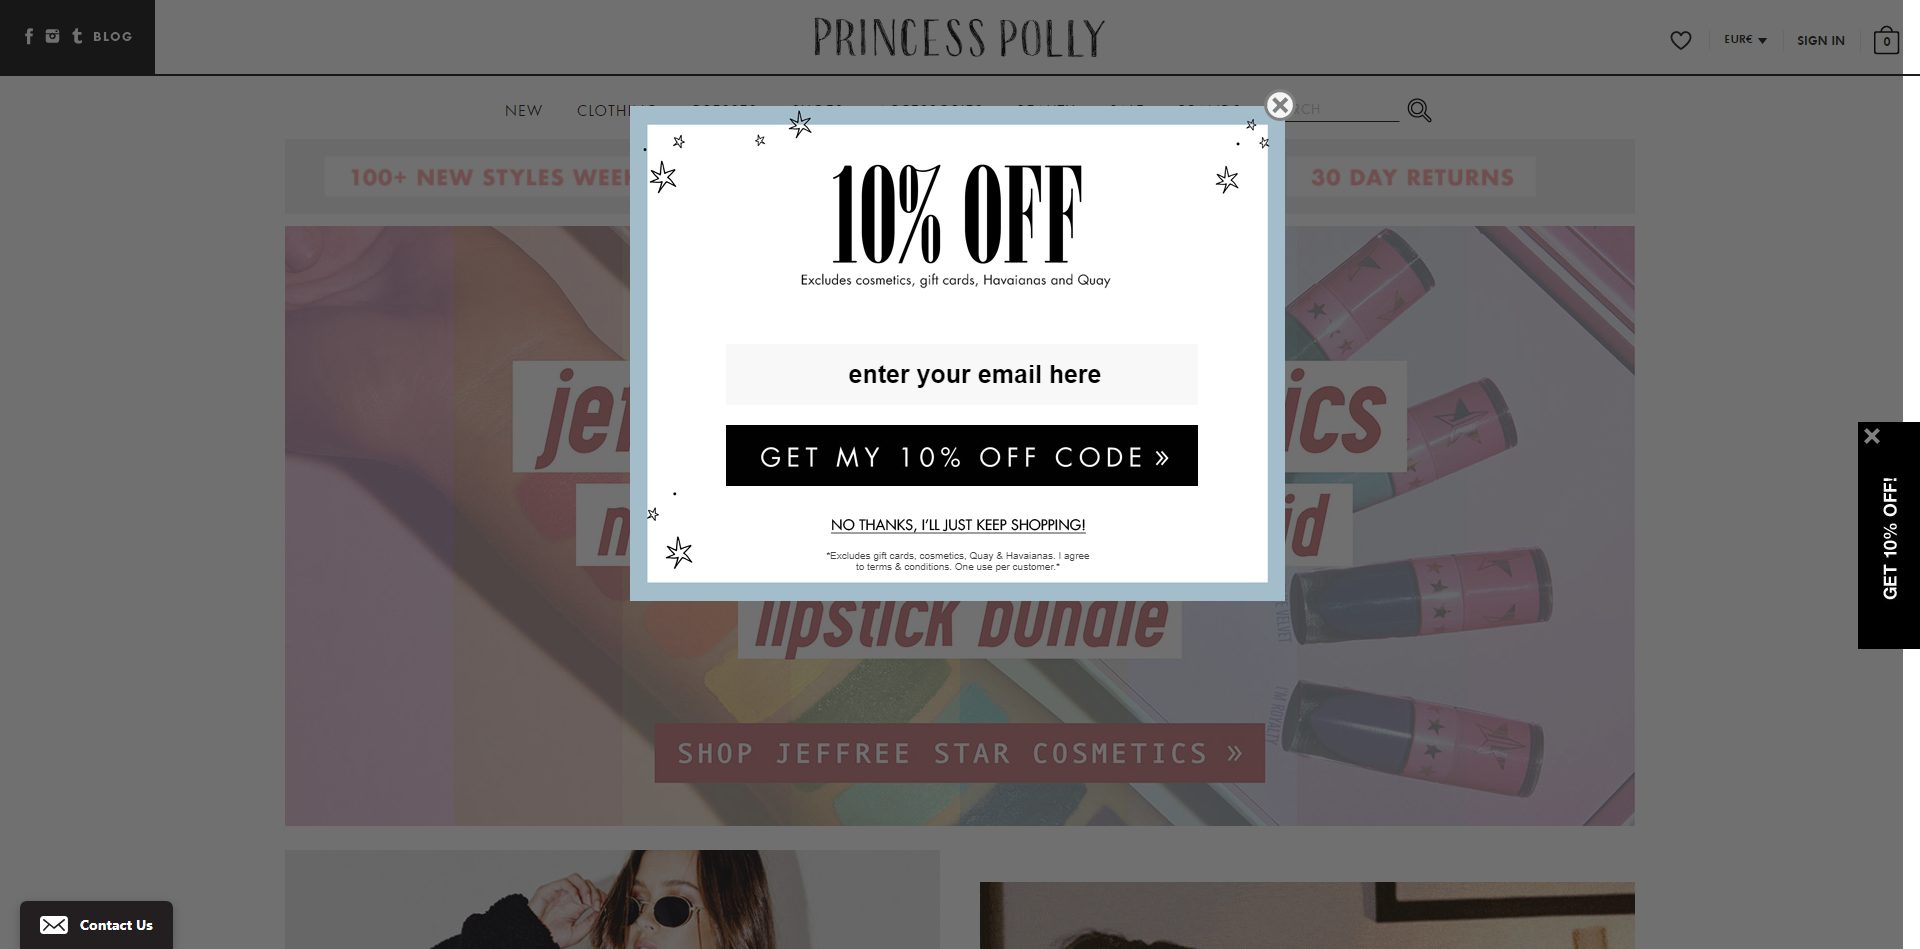 An email popup on Magento-powered website princesspolly.com